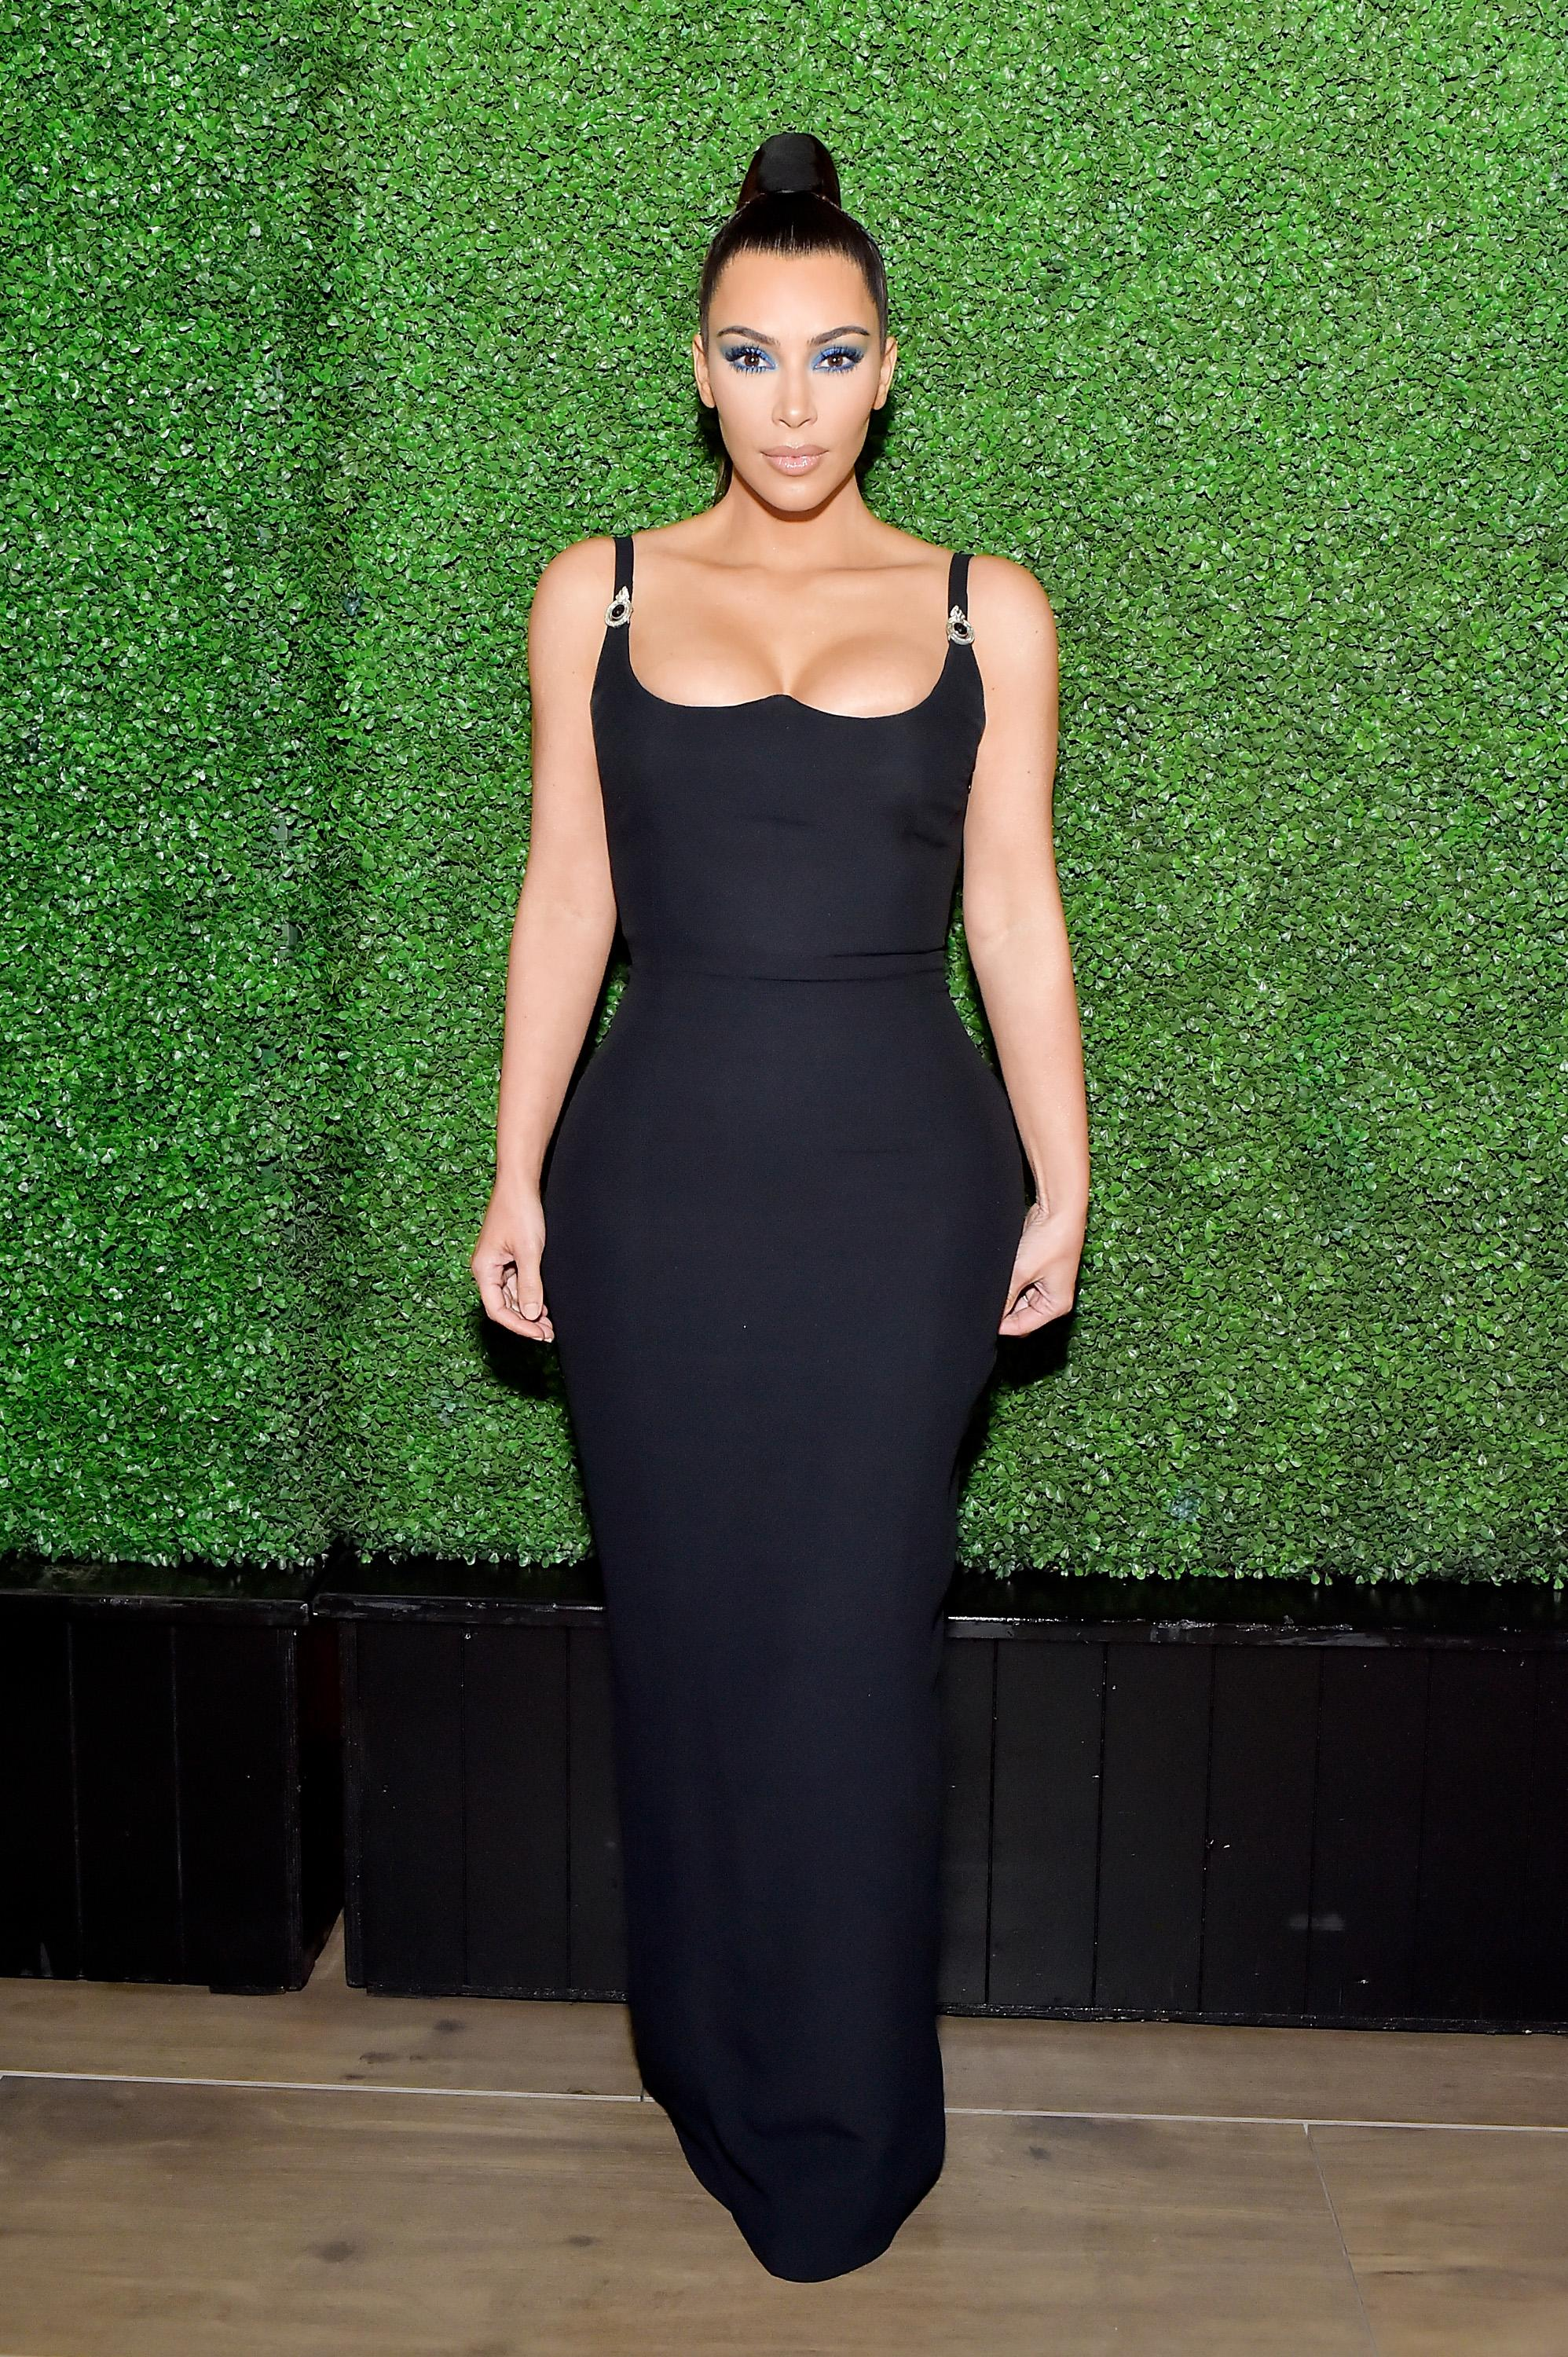 Kim Kardashian nearly shows all in photo for new fragrance [Video]